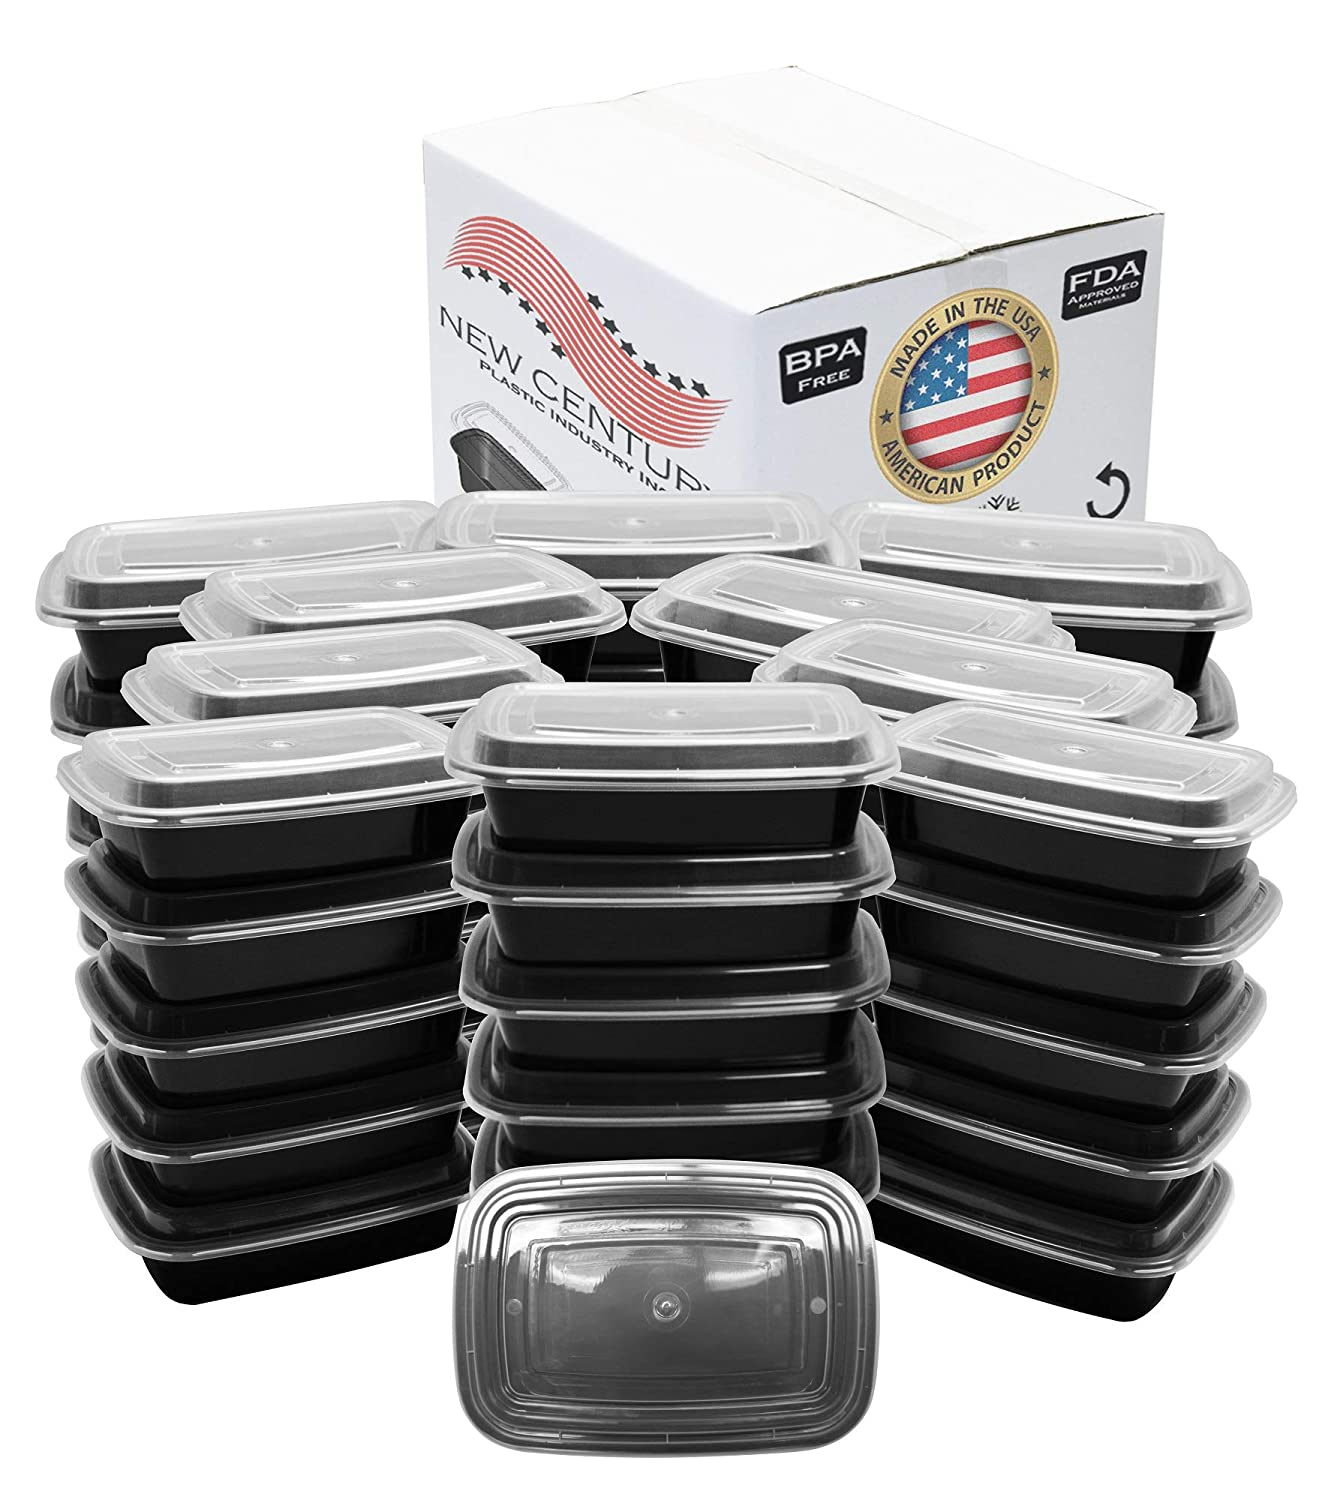 50-Pack [38 oz] 1-Compartment Food Container - Rectangular Meal Prep Bento with Lid - Portable Lunch Box - Stackable - BPA Free - Freezer/Microwave/Dishwasher Safe - Reusable Storage - USA Made